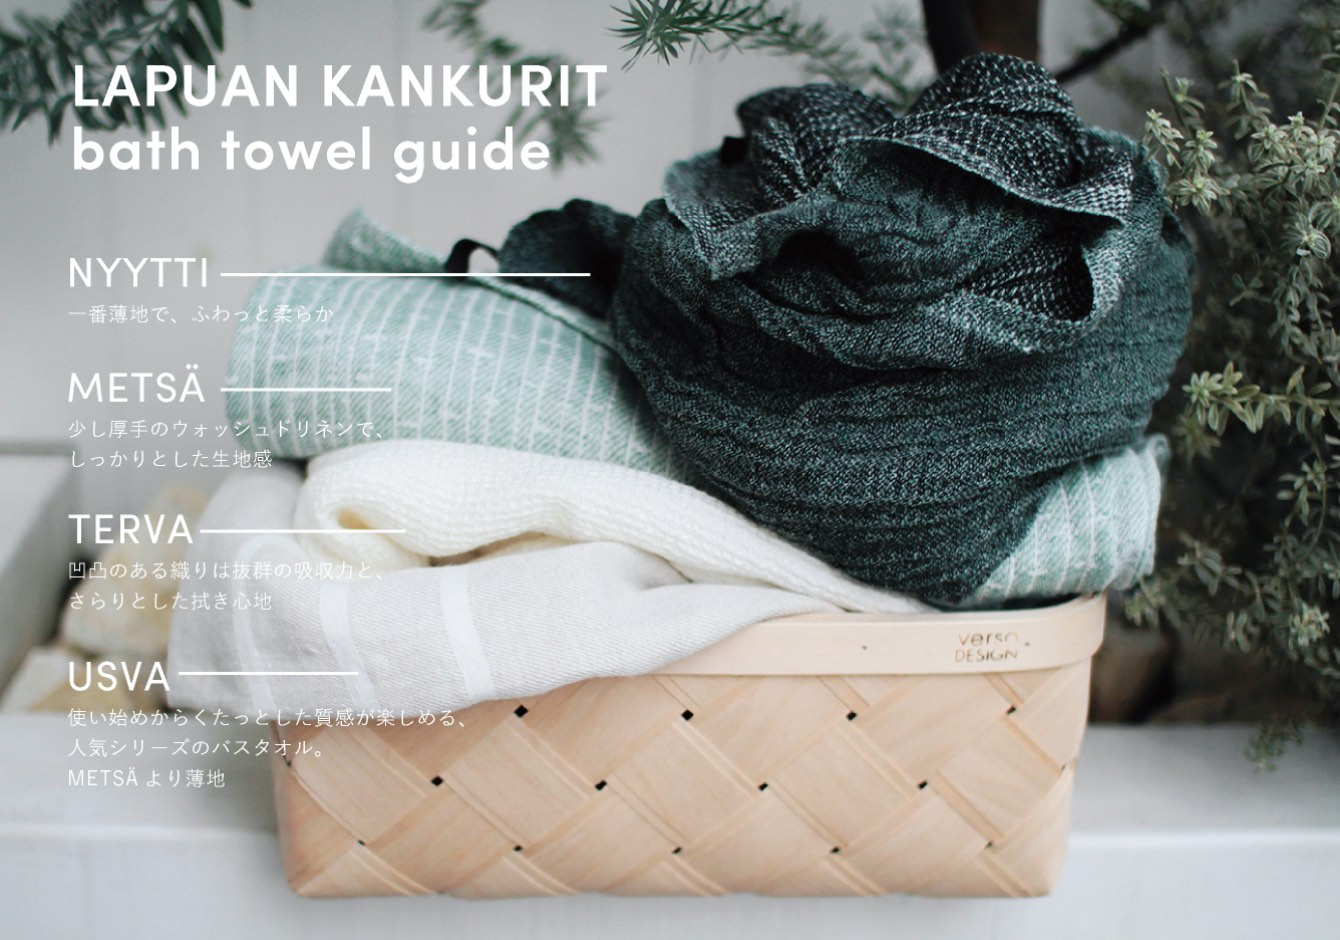 HOME SPA with linen bath towelsのイメージ画像